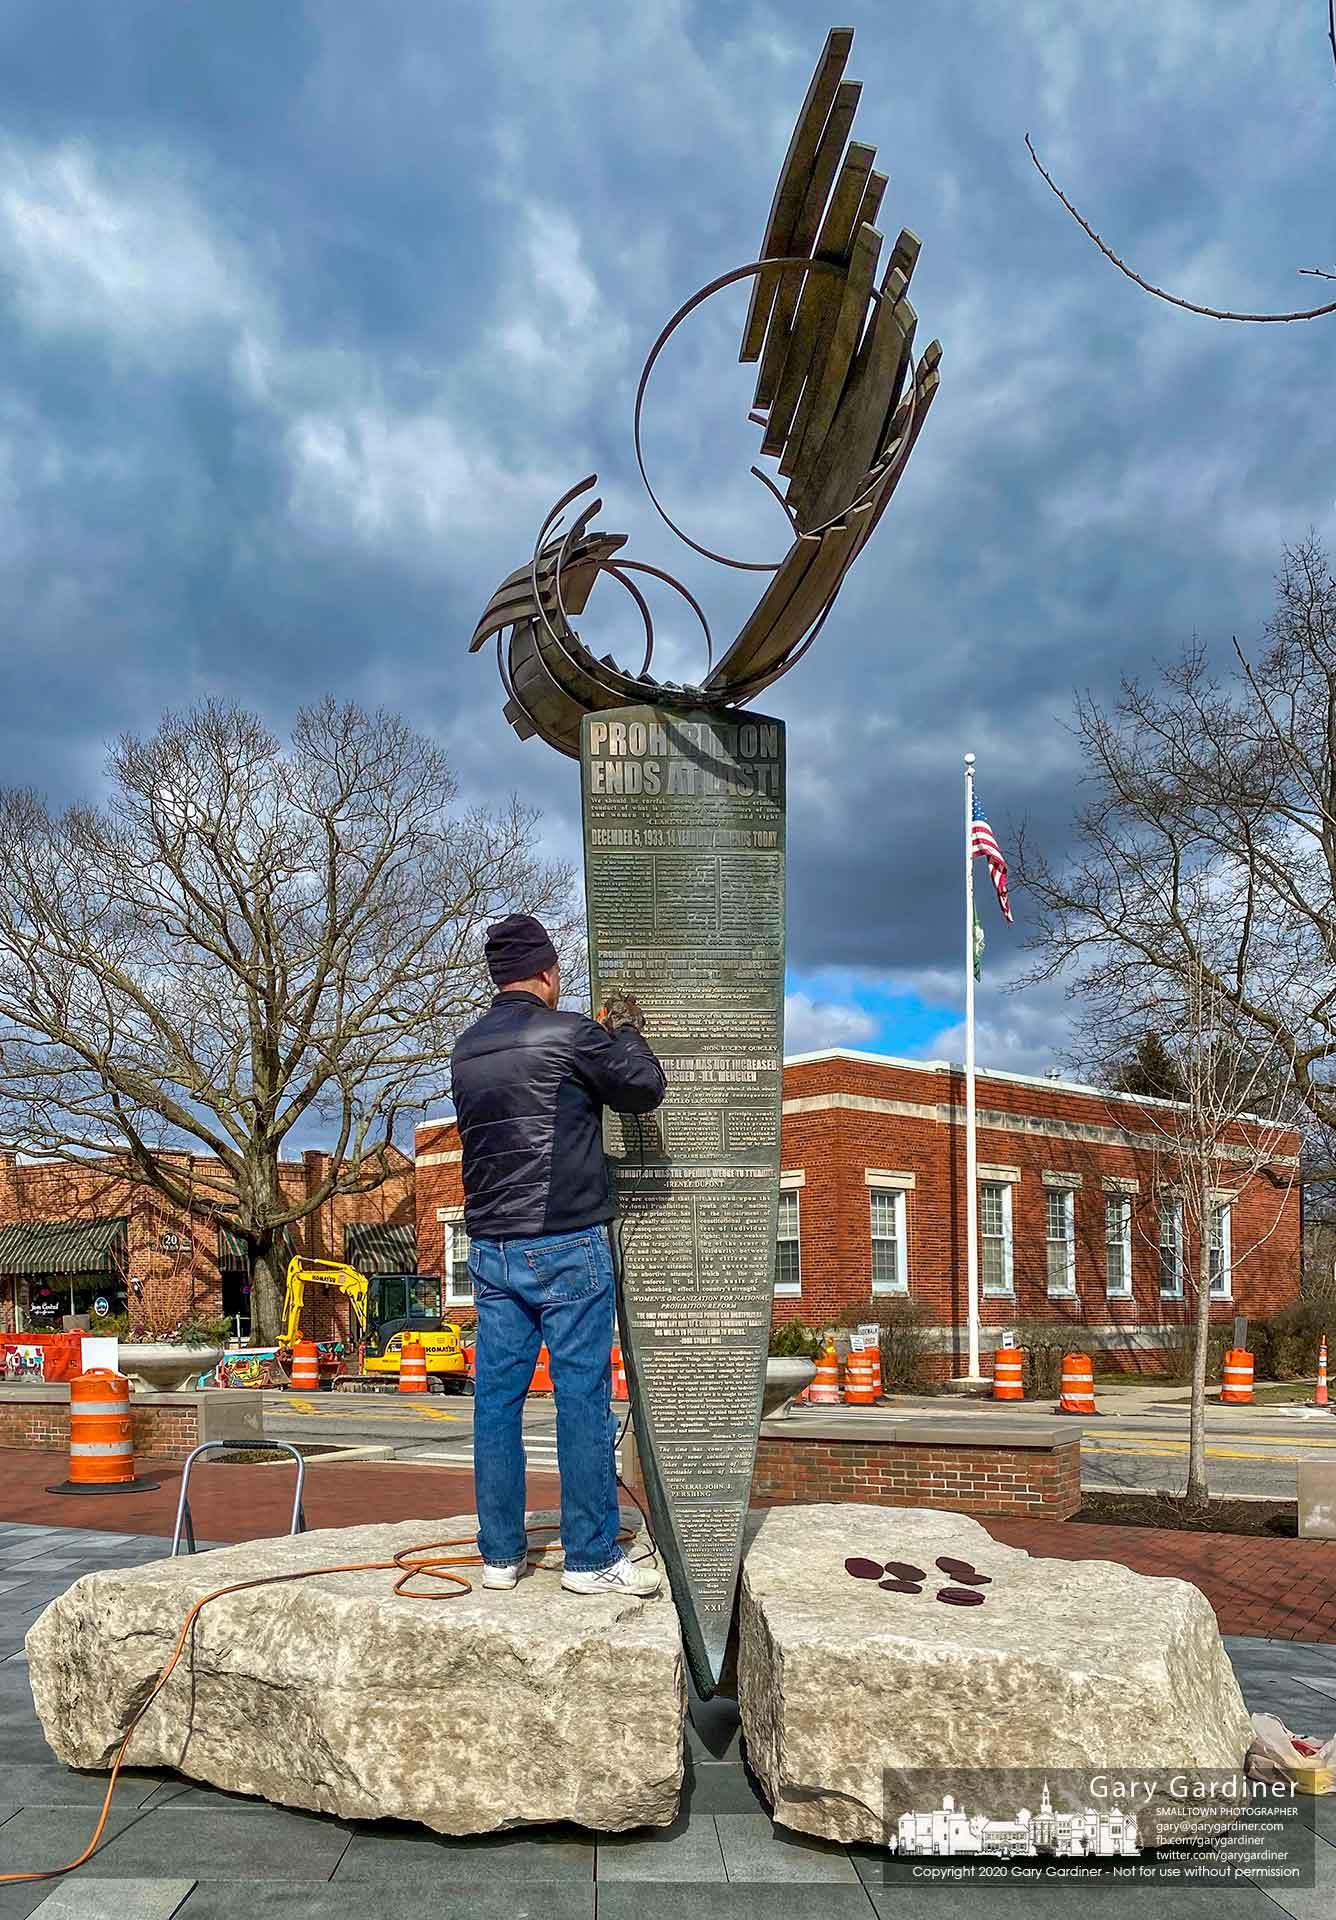 Westerville Law Director Bruce Bailey polishes The American Issue Sculpture by Matthew Gray Palmer severalo days before Spring begins. The sculpture was commissioned by Bailey. My Final Photo for March 15, 2020.